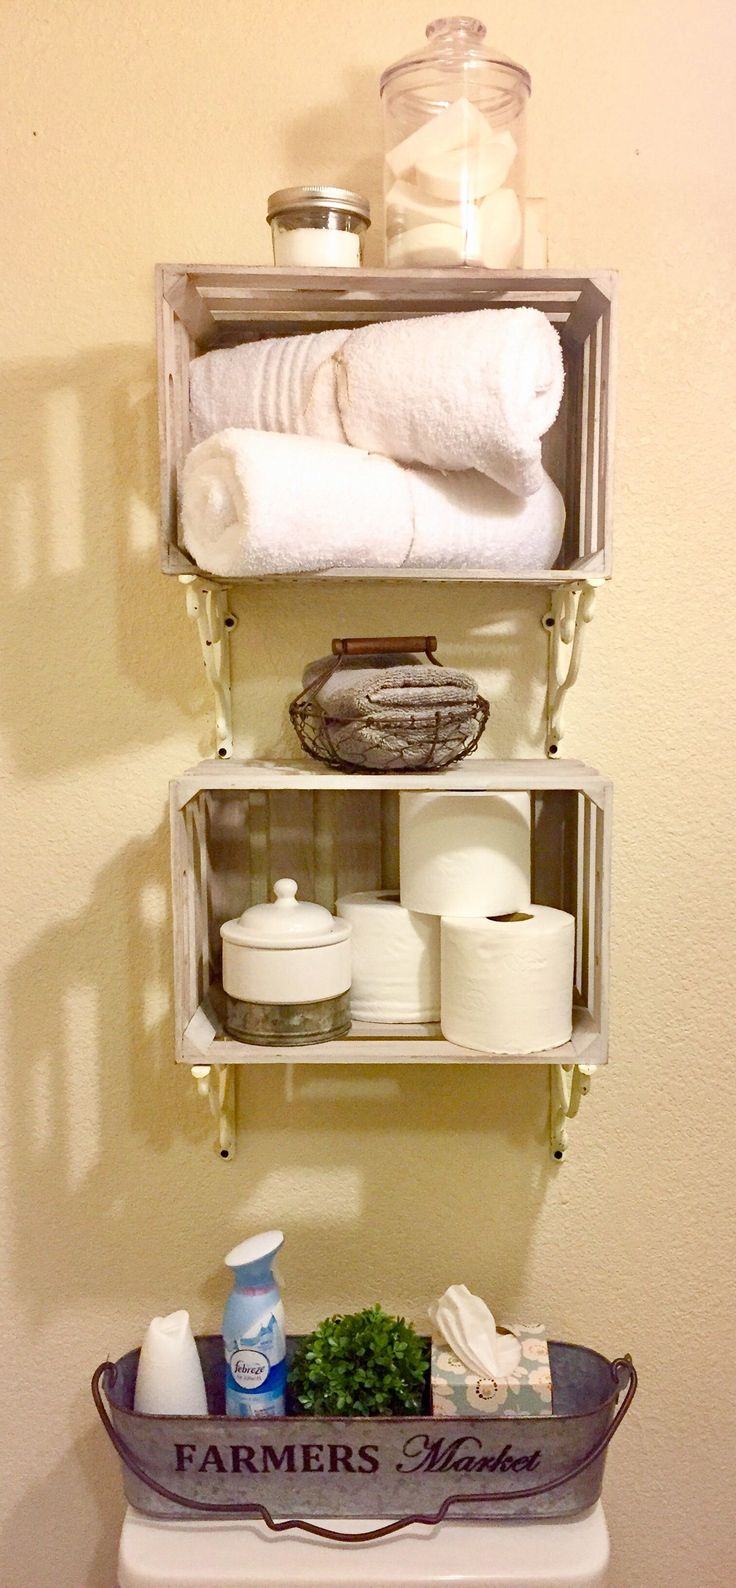 best 25 western bathroom decor ideas on pinterest western decor french country farmhouse bathroom storage shelves decor